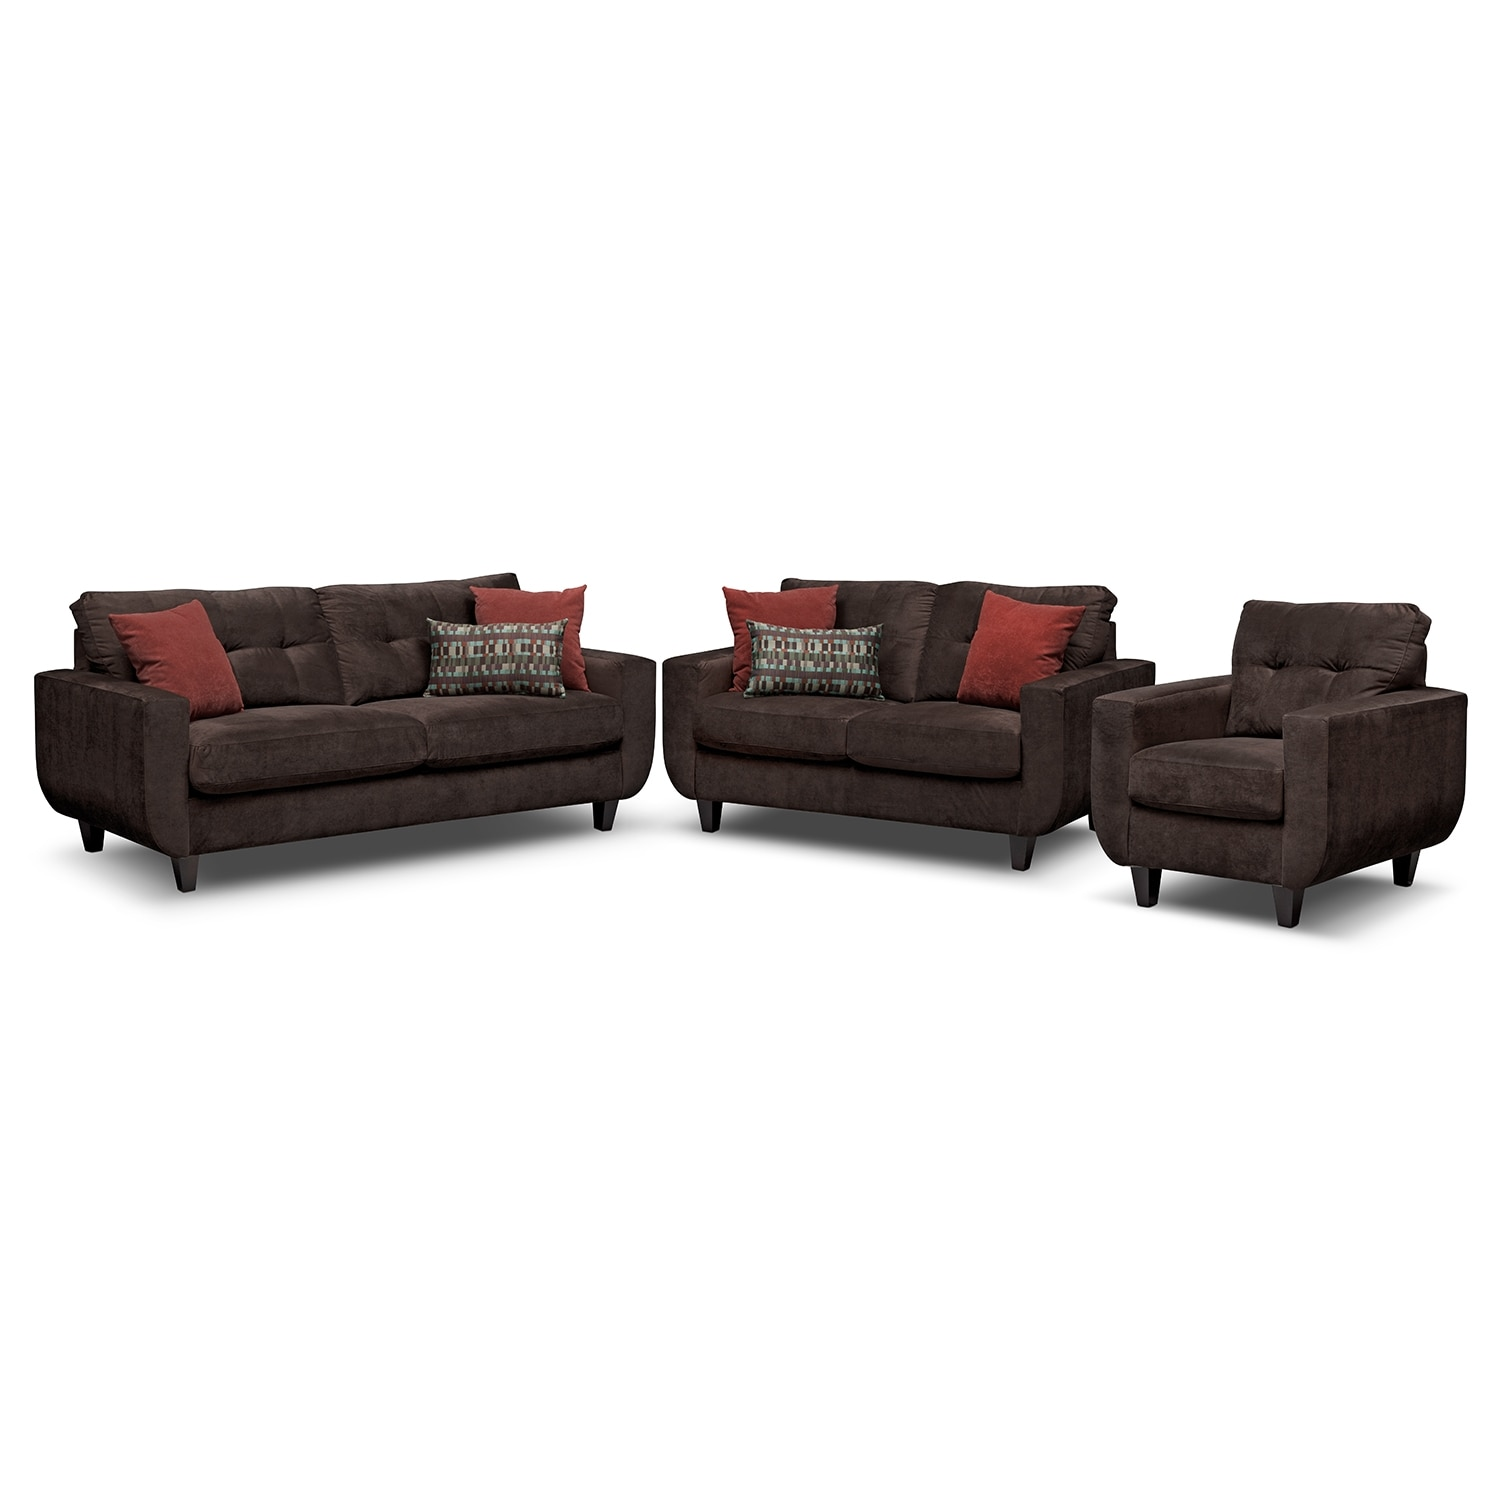 Living Room Furniture - West Village Sofa, Loveseat and Chair Set - Chocolate